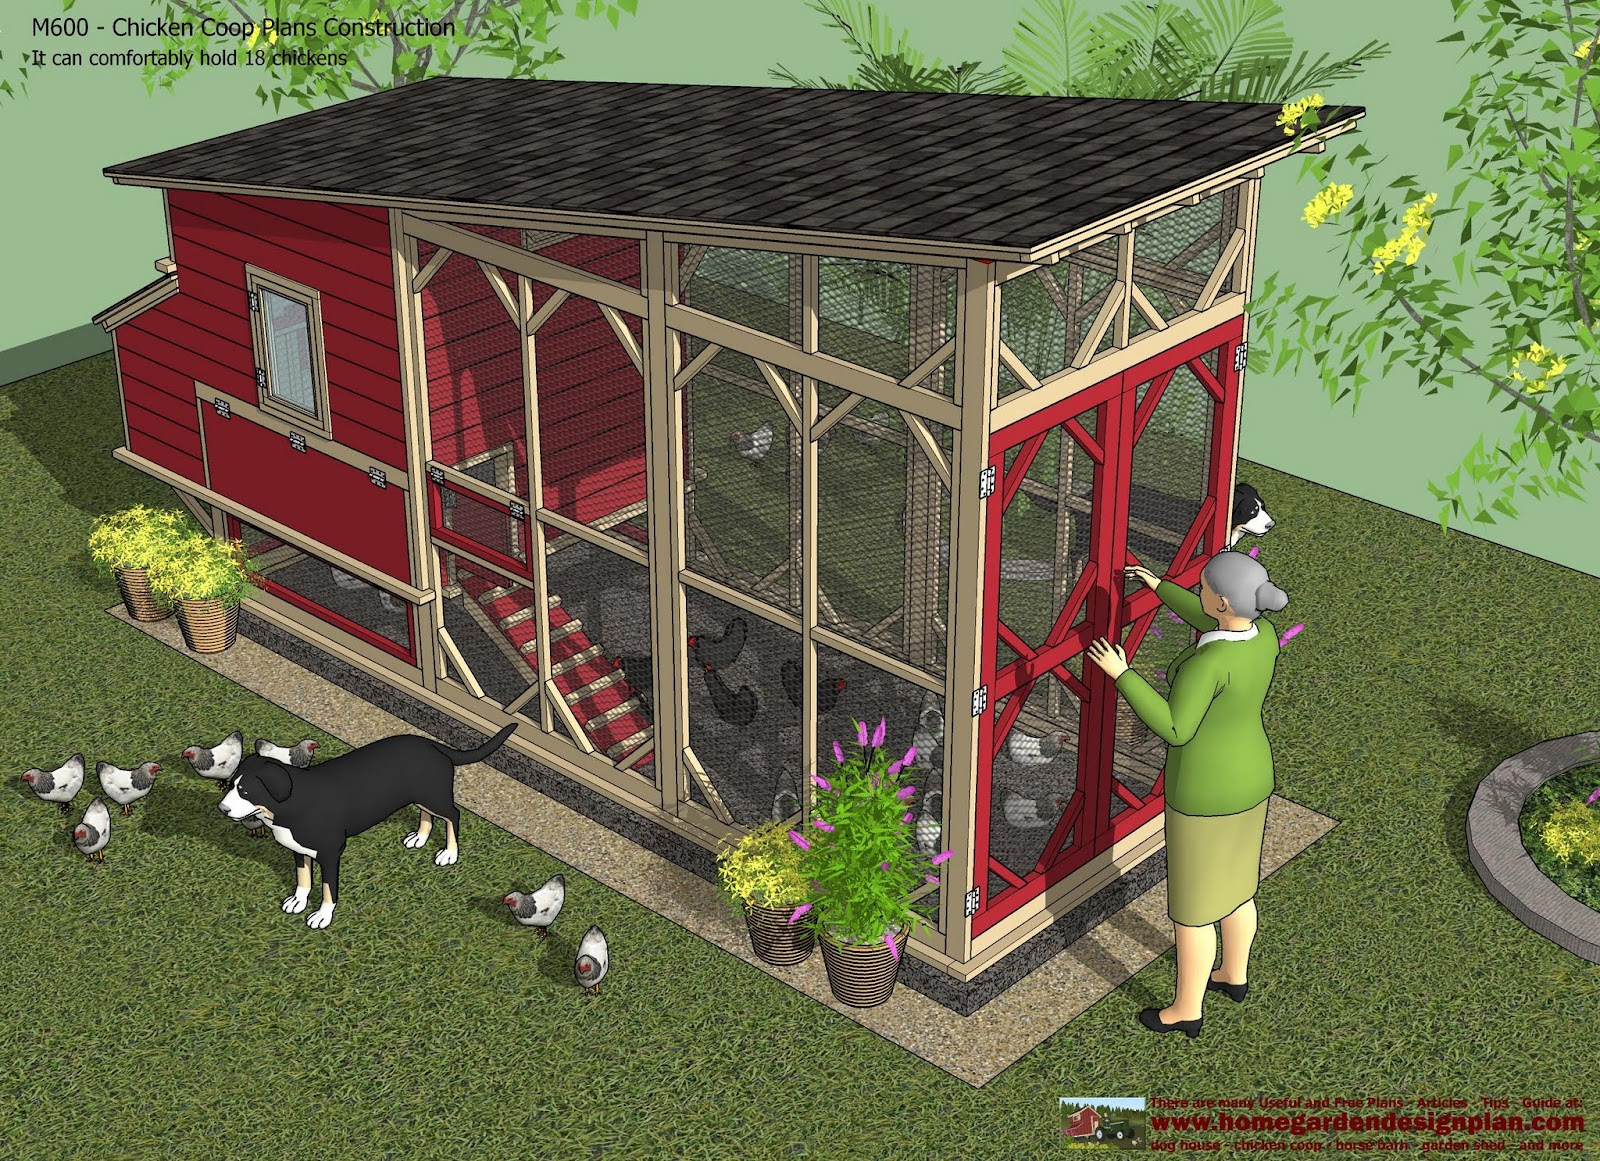 M600 Chicken Coop Plans Construction Chicken Coop Design How To Build ...